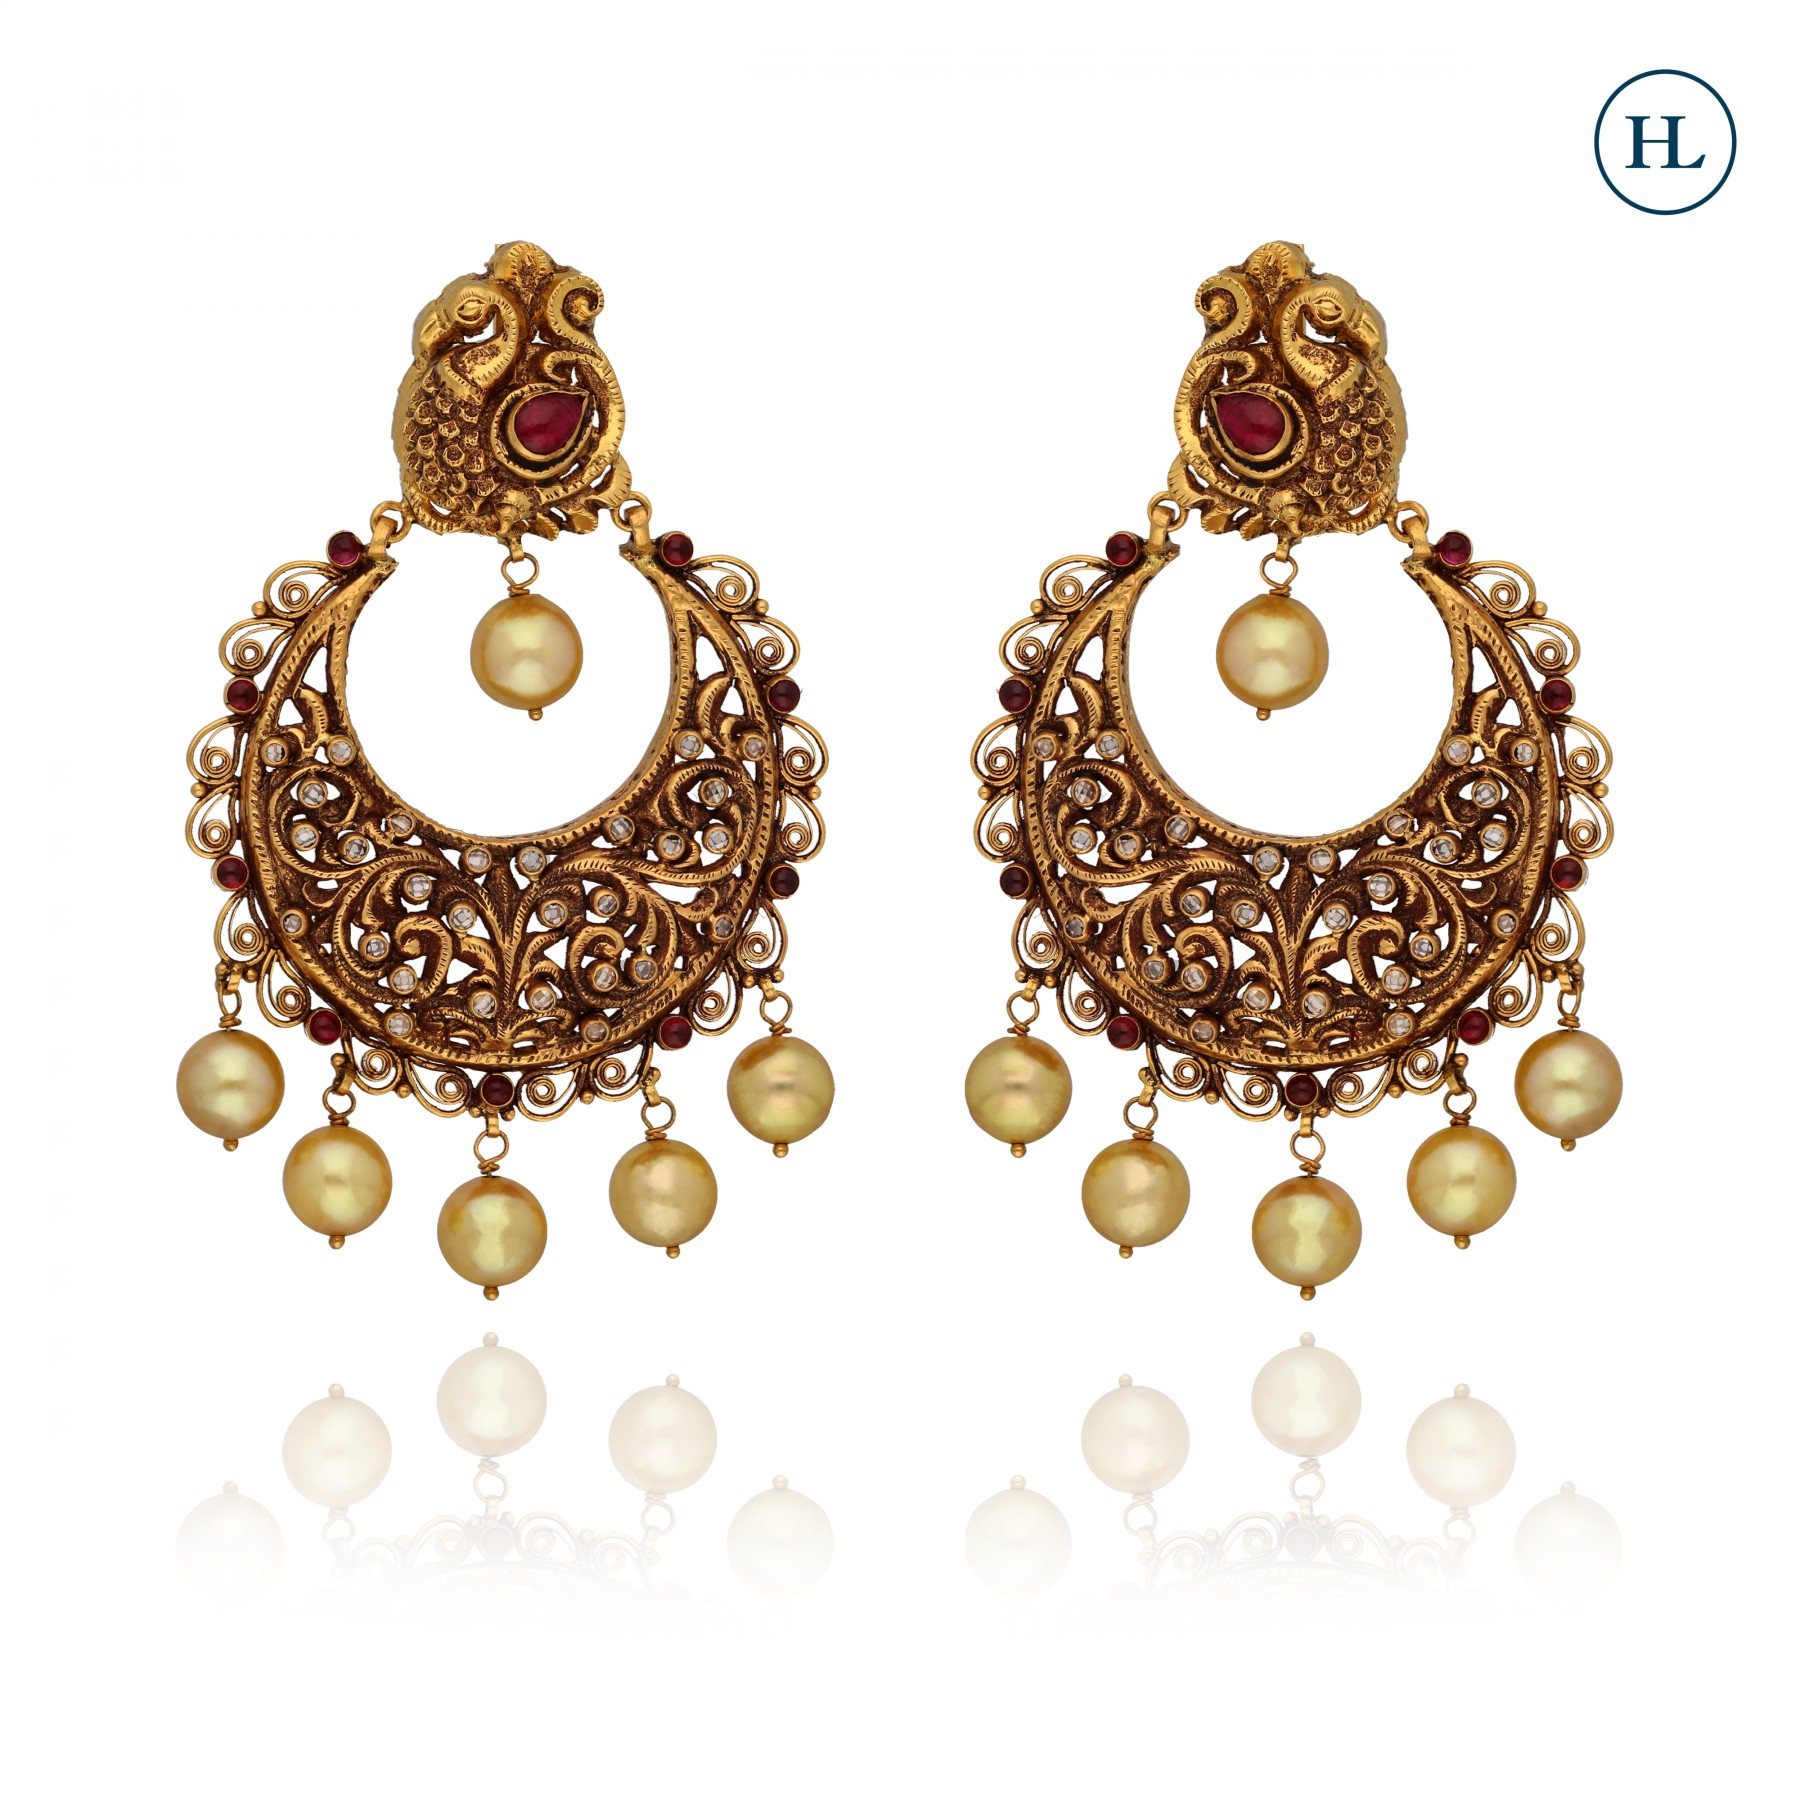 Antique-Styled Pearl Chand Bali